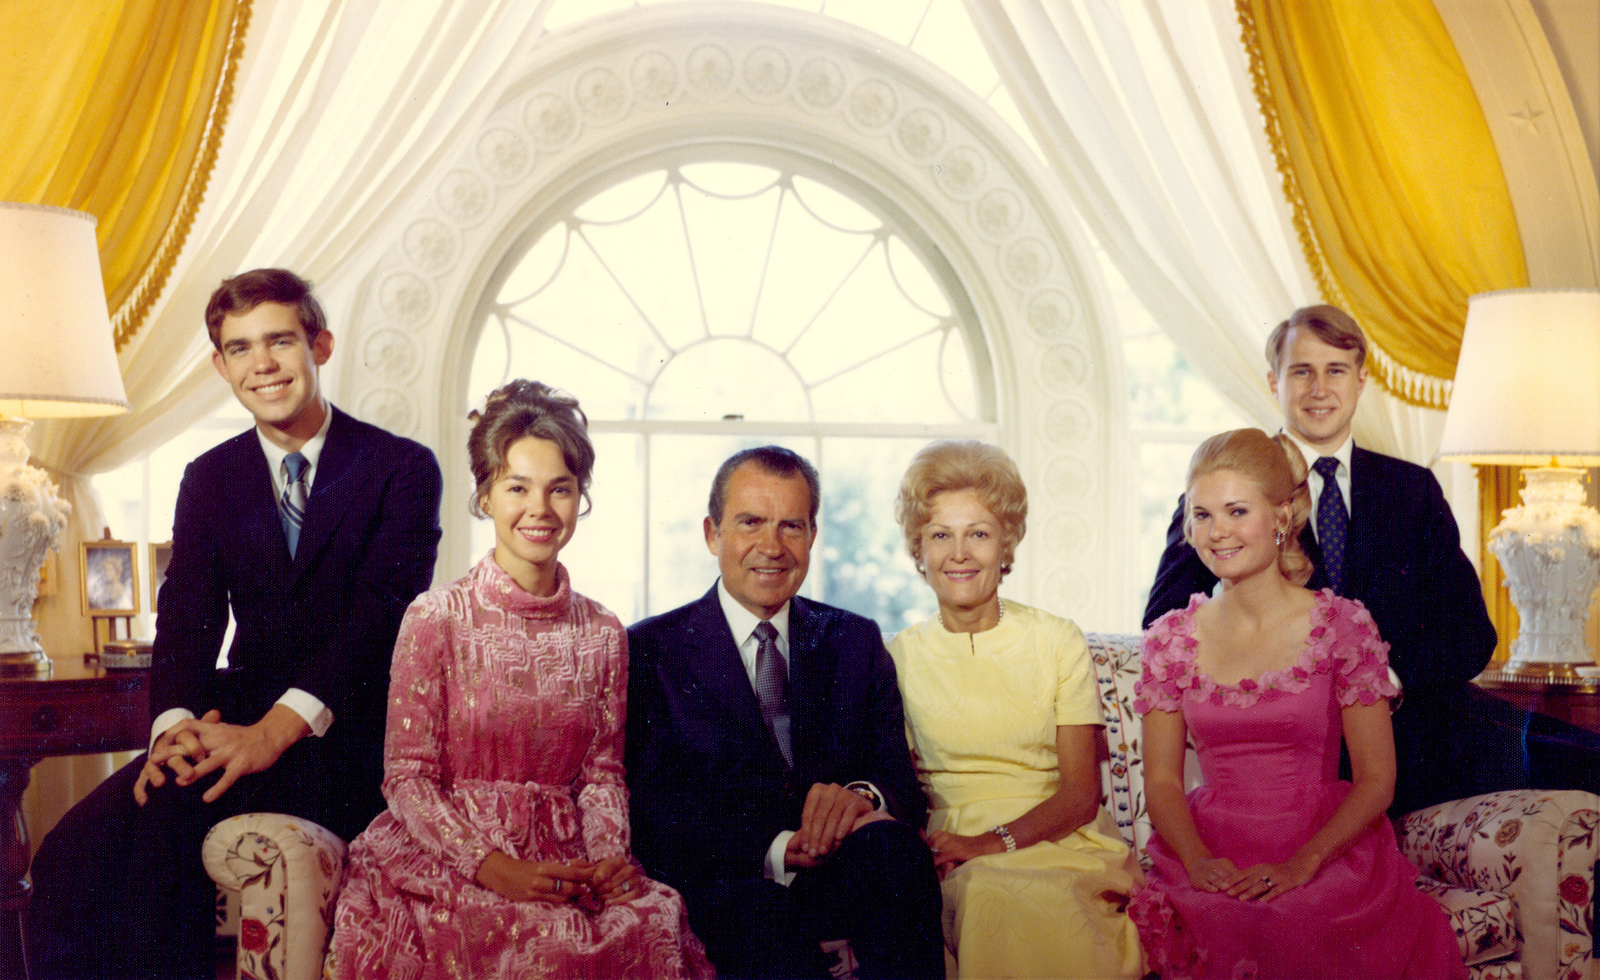 Nixon Family Portrait Taken in the White House Living Quarters